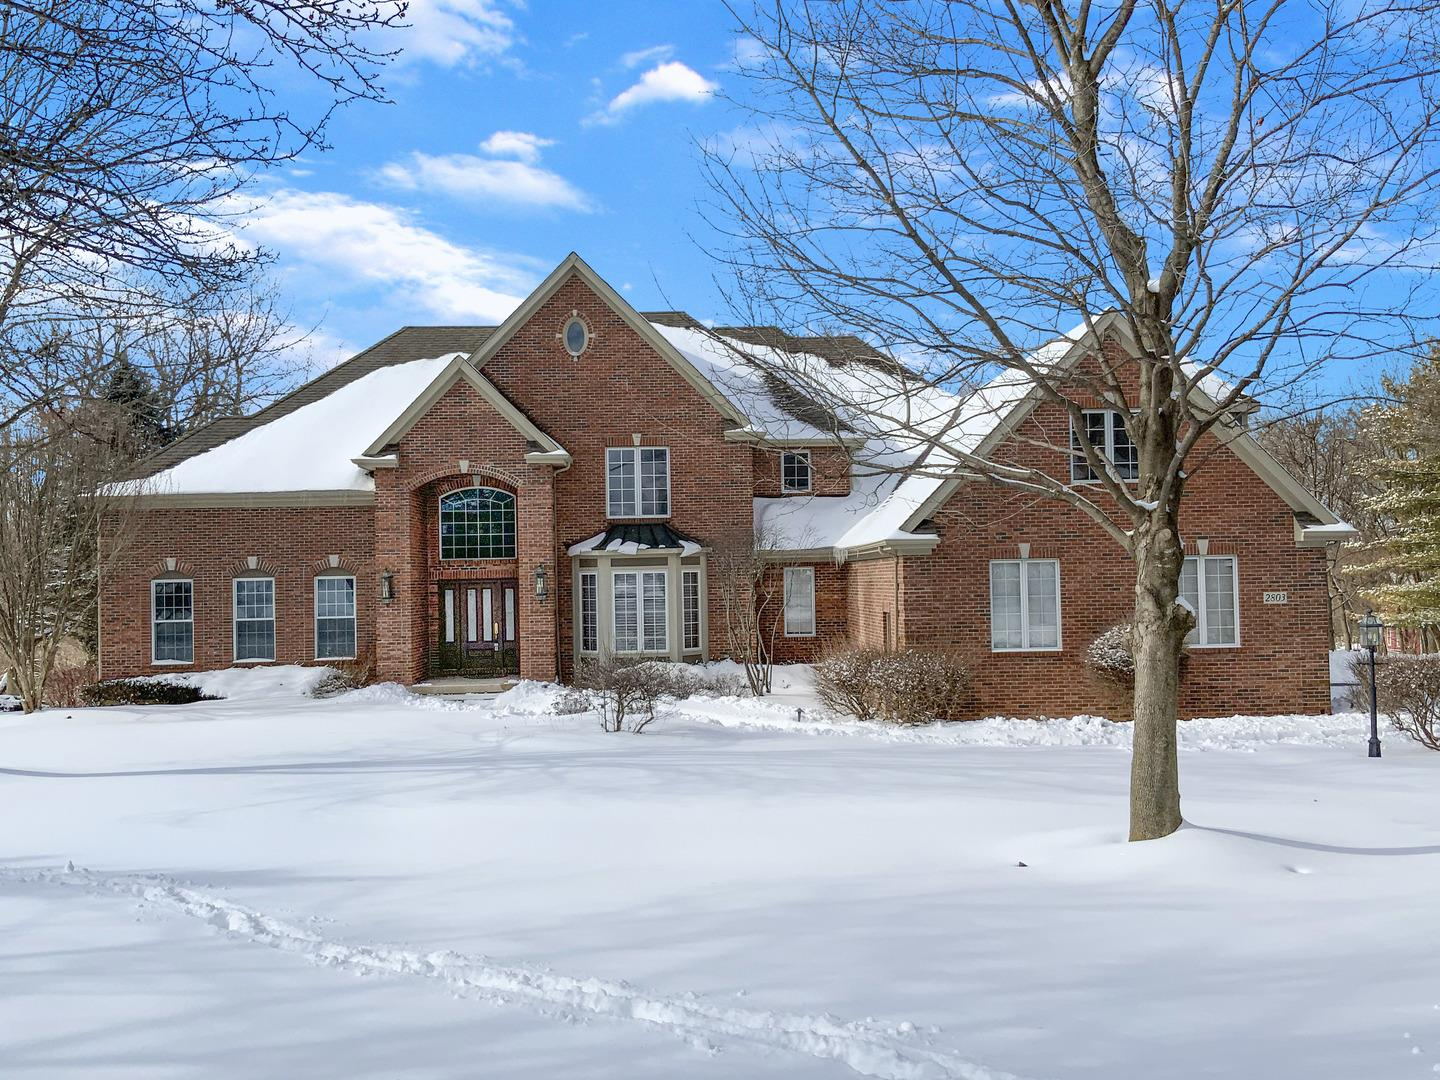 2803 Bergren Court, Crystal Lake, IL 60012 - #: 11010038